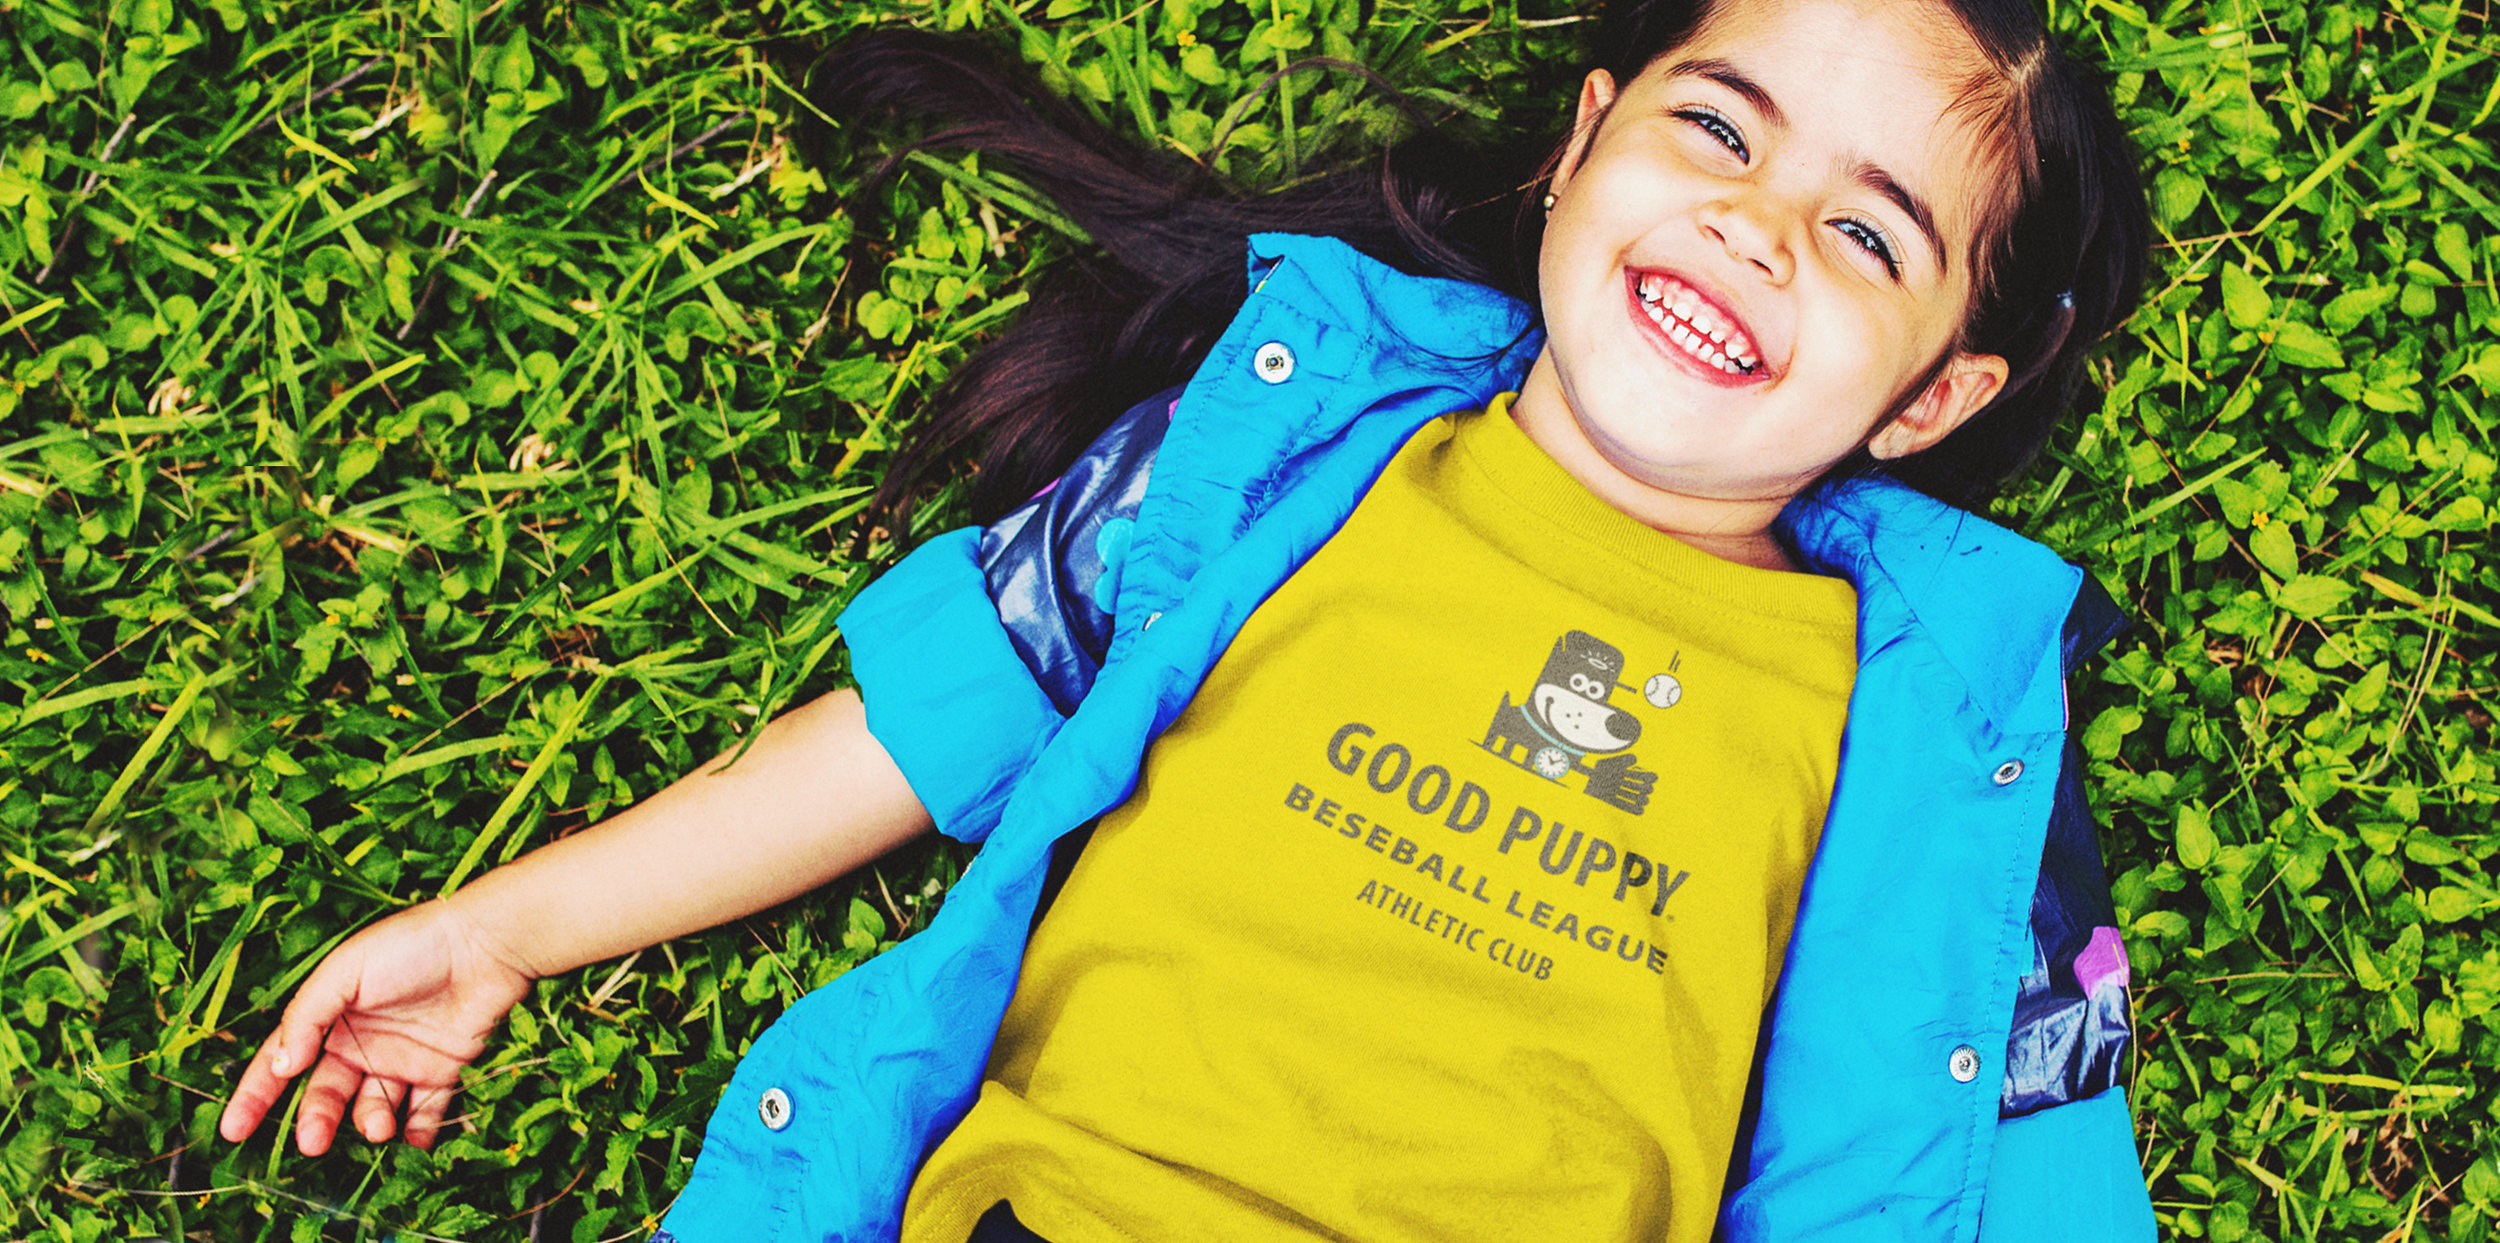 VINTAGE_Clothing_Collection-01-Childrens_Clothing-Unique_Tees_And_Gifts.jpg